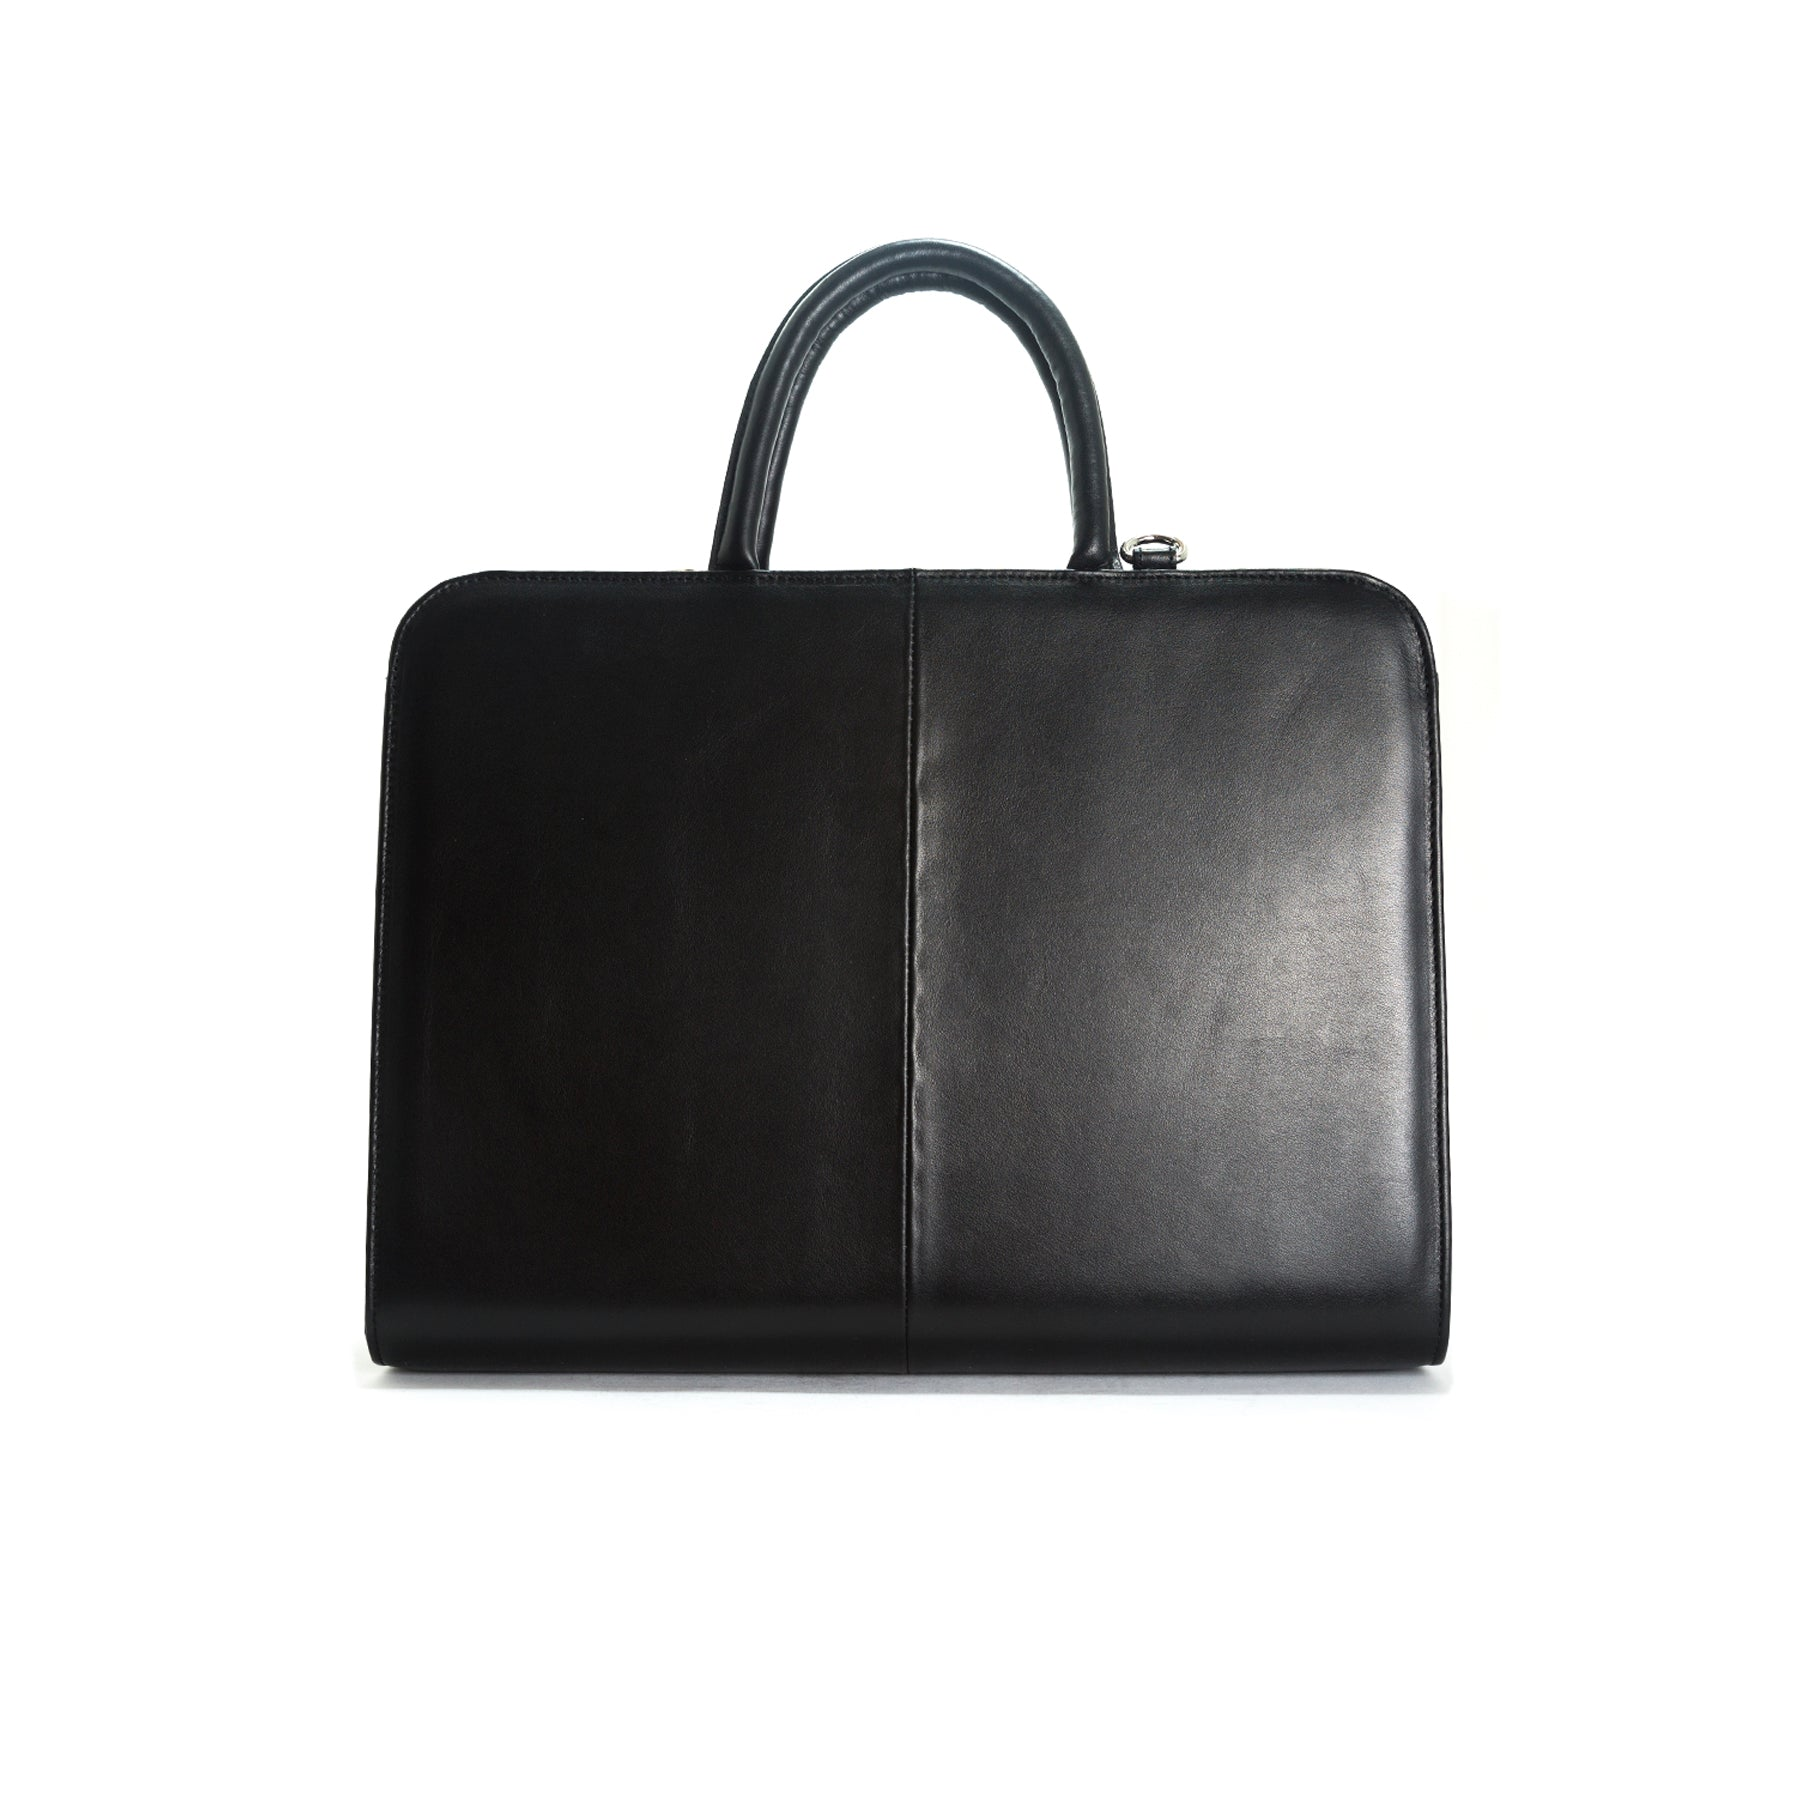 Sylvie Black Leather Bags